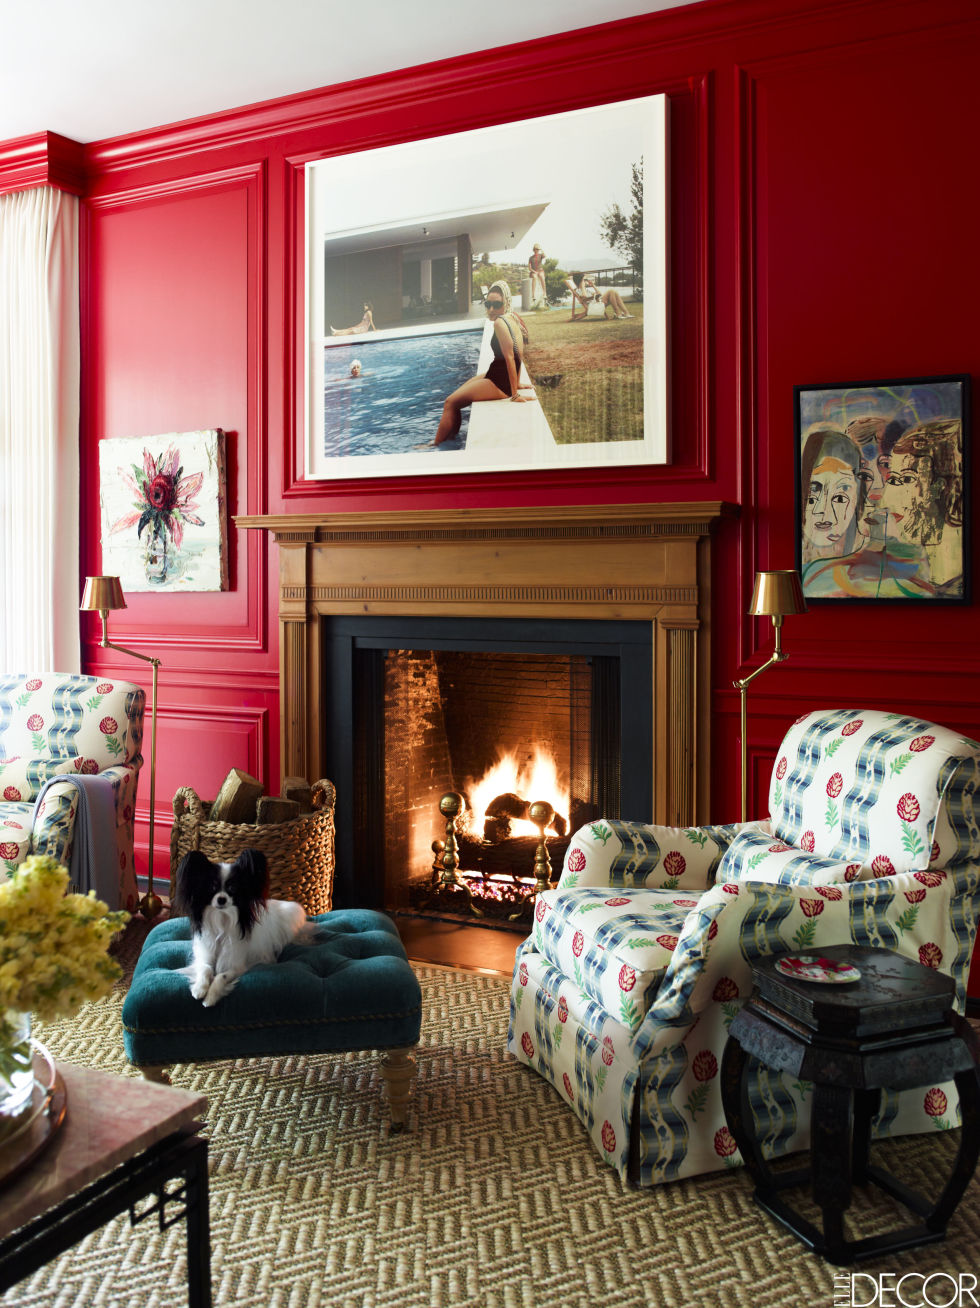 houston home interior designers house of samples home about portfolio services contact